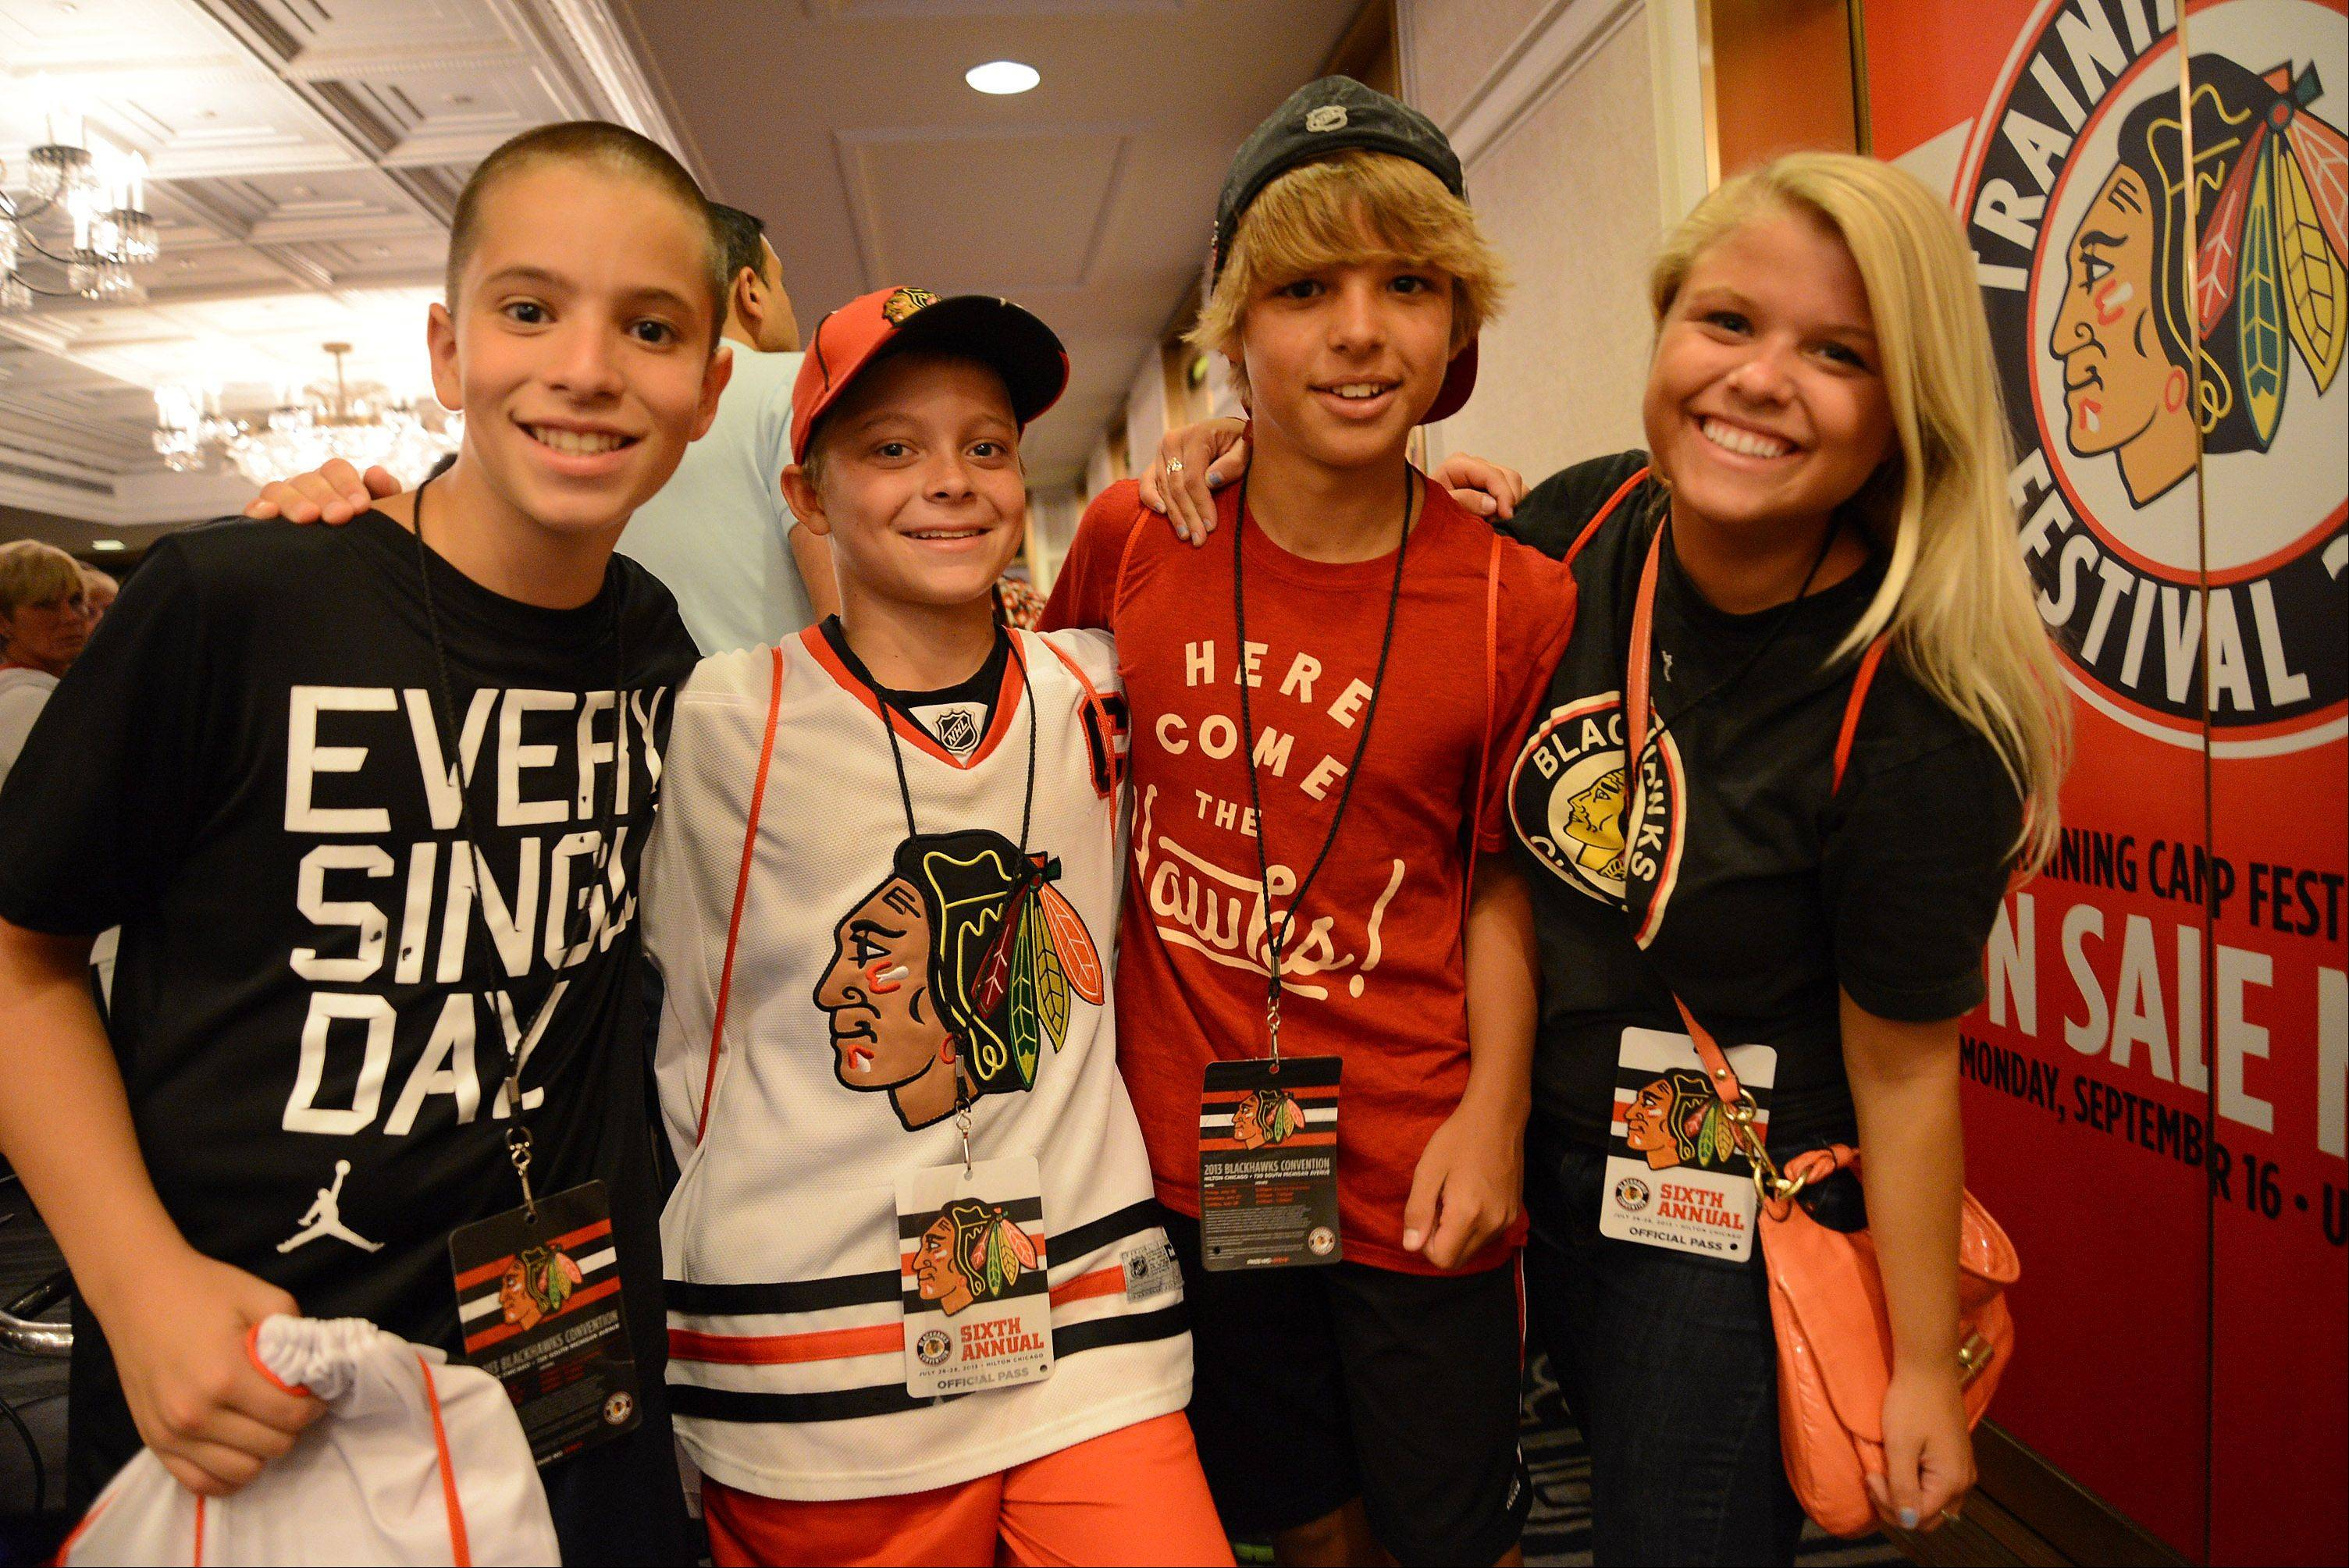 Attending their fifth Blackhawks Convention are Sam Bryant, Kyle Junkunz, Joey Massarelli and Paige Massarelli, all from Libertyville.